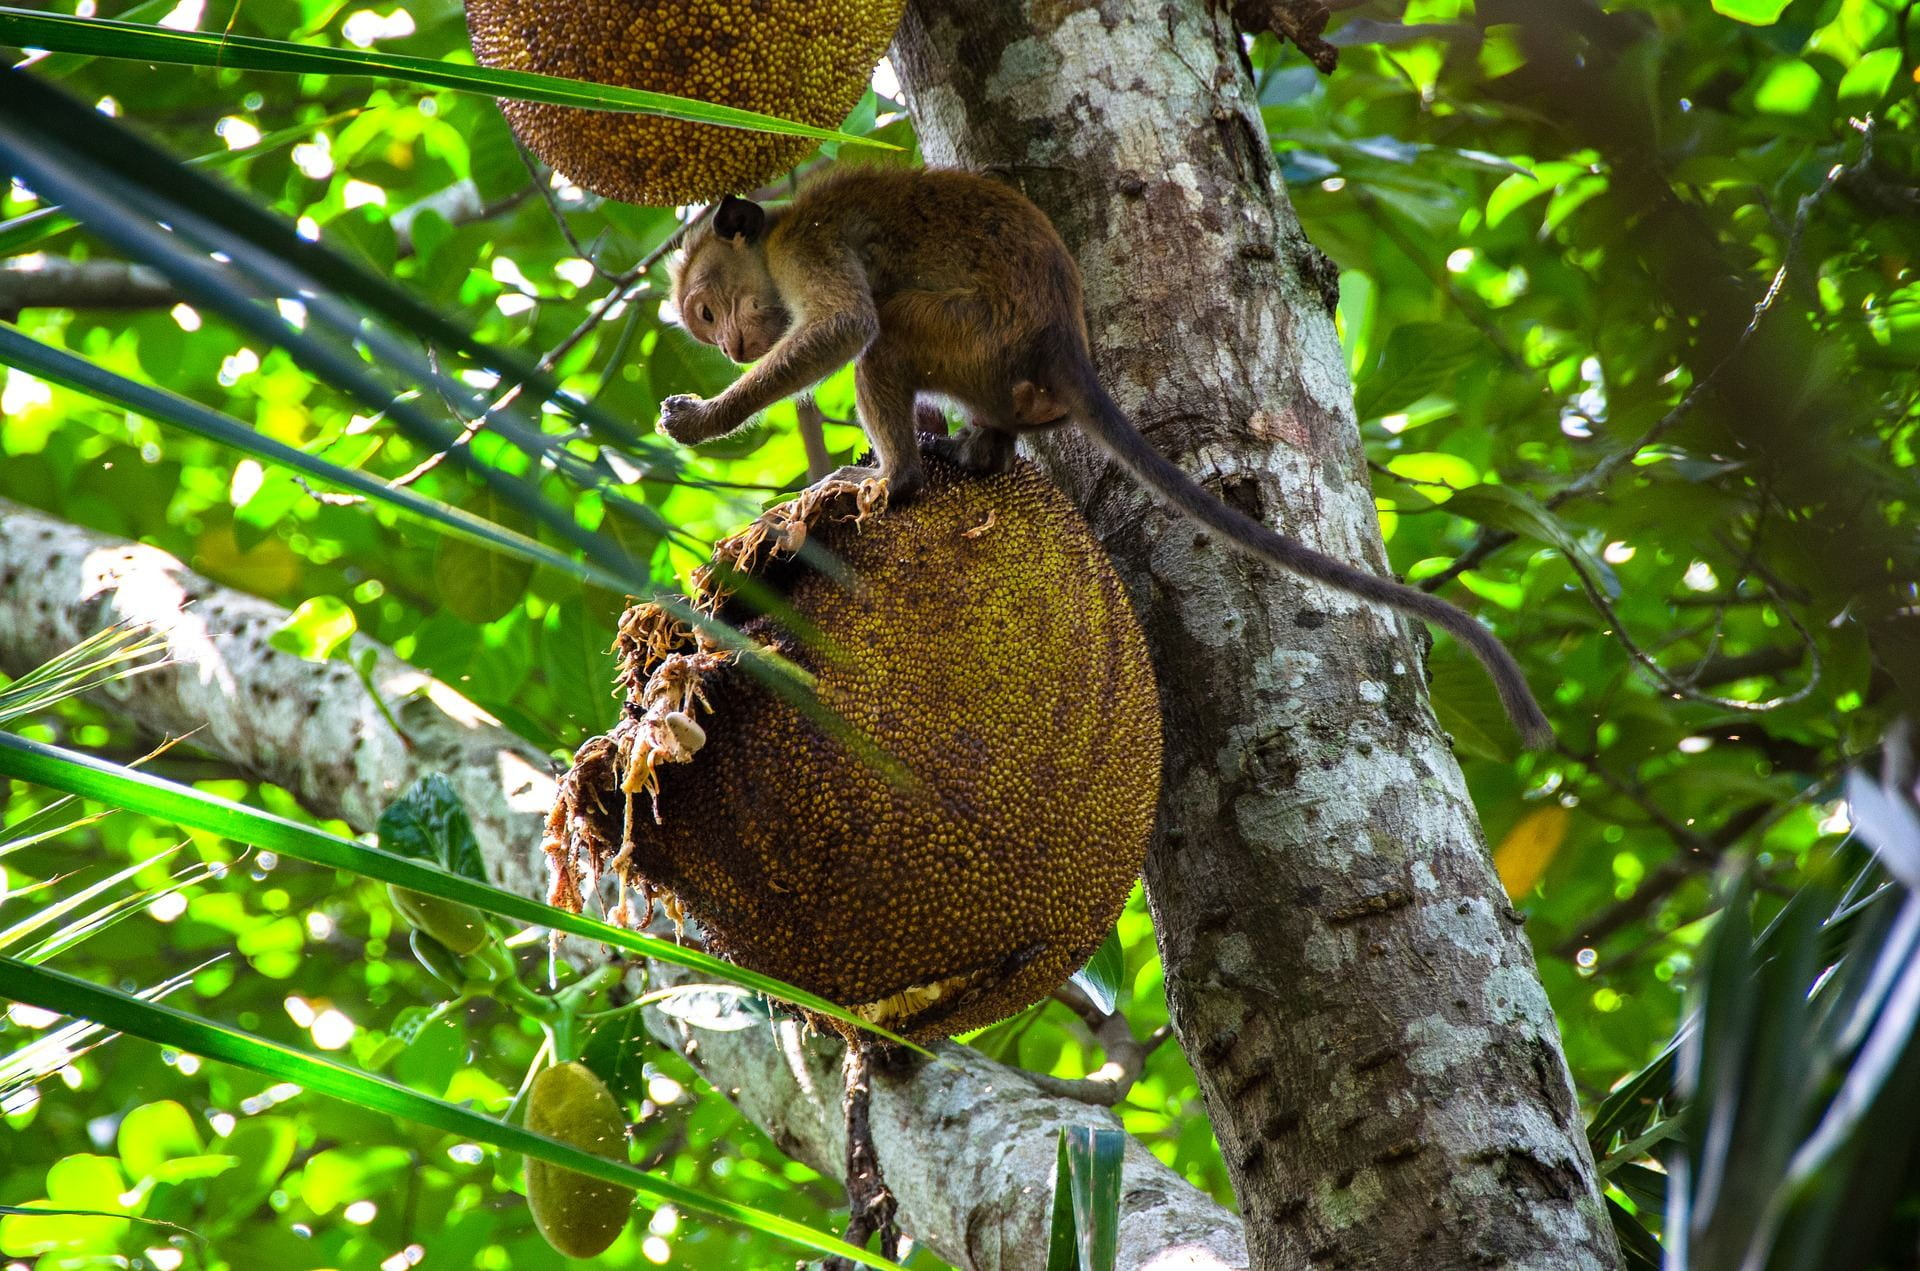 A young macaque enjoys some jackfruit up in the trees.